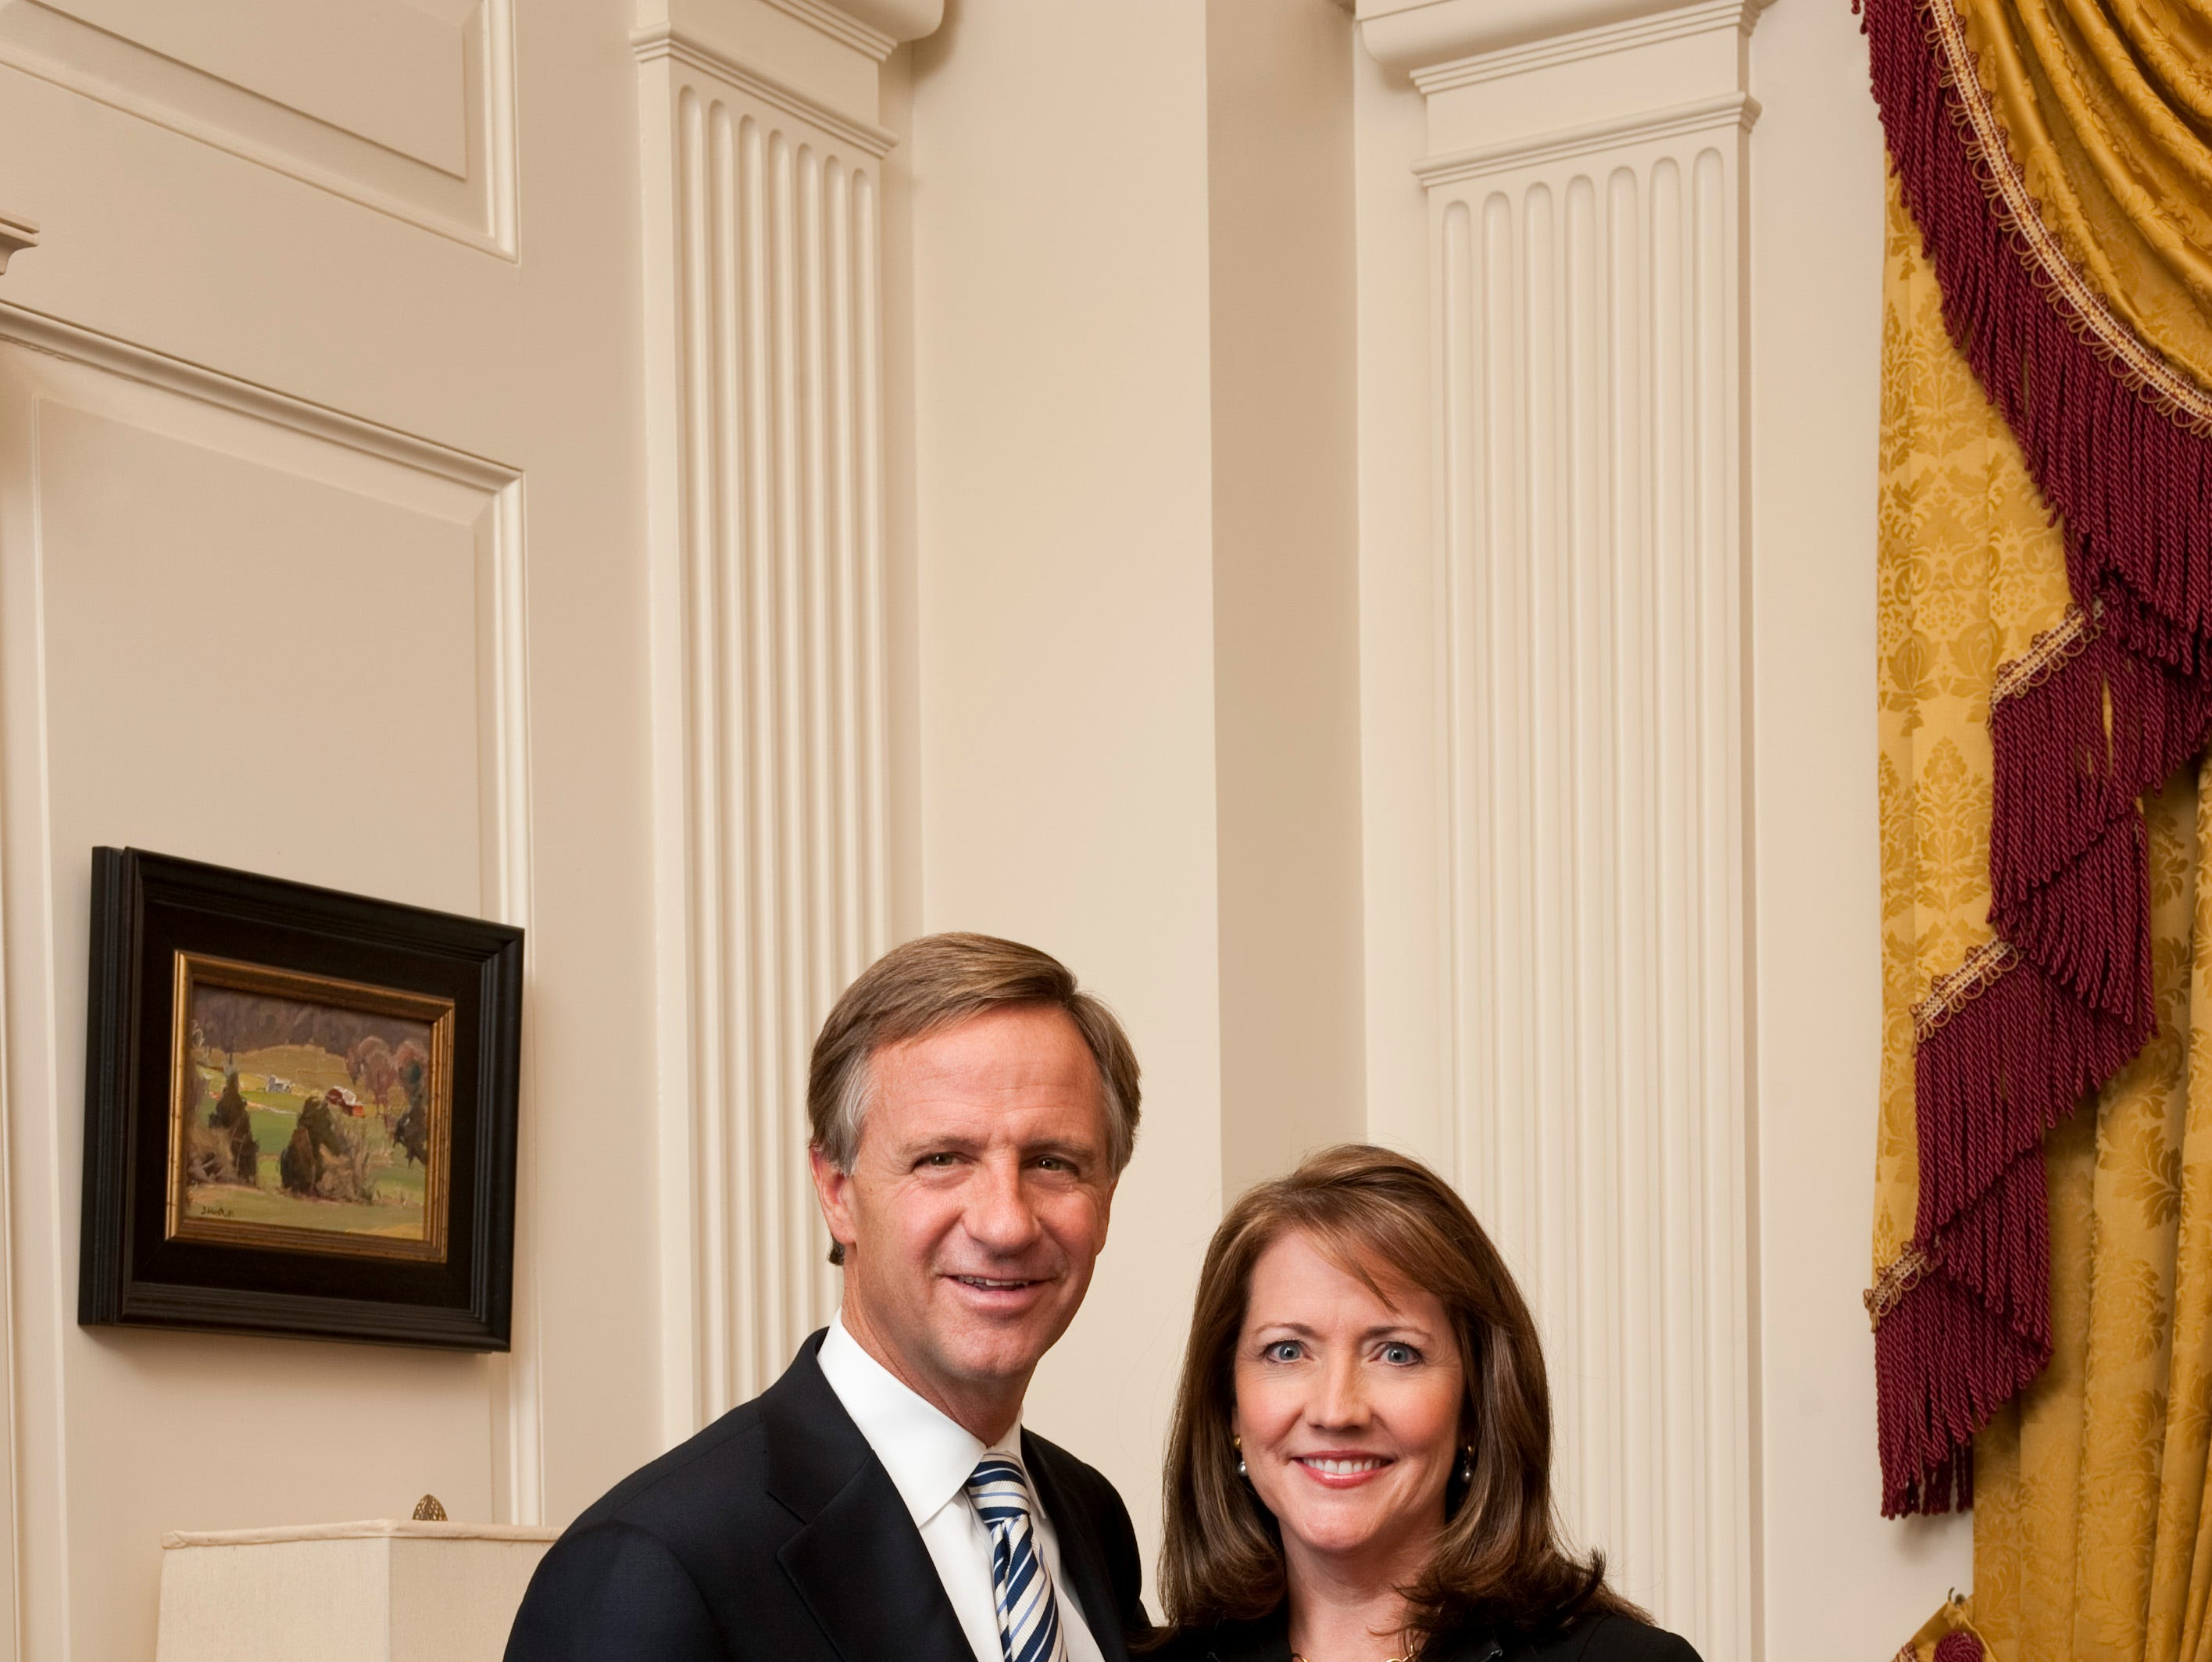 The East Tennessee Business Hall of Fame recently announced the 2019 Laureate honorees for the 30th Anniversary Award Dinner to be held on April 4, 2018 at the Downtown Knoxville Convention Center: Bill Haslam and Crissy Haslam.